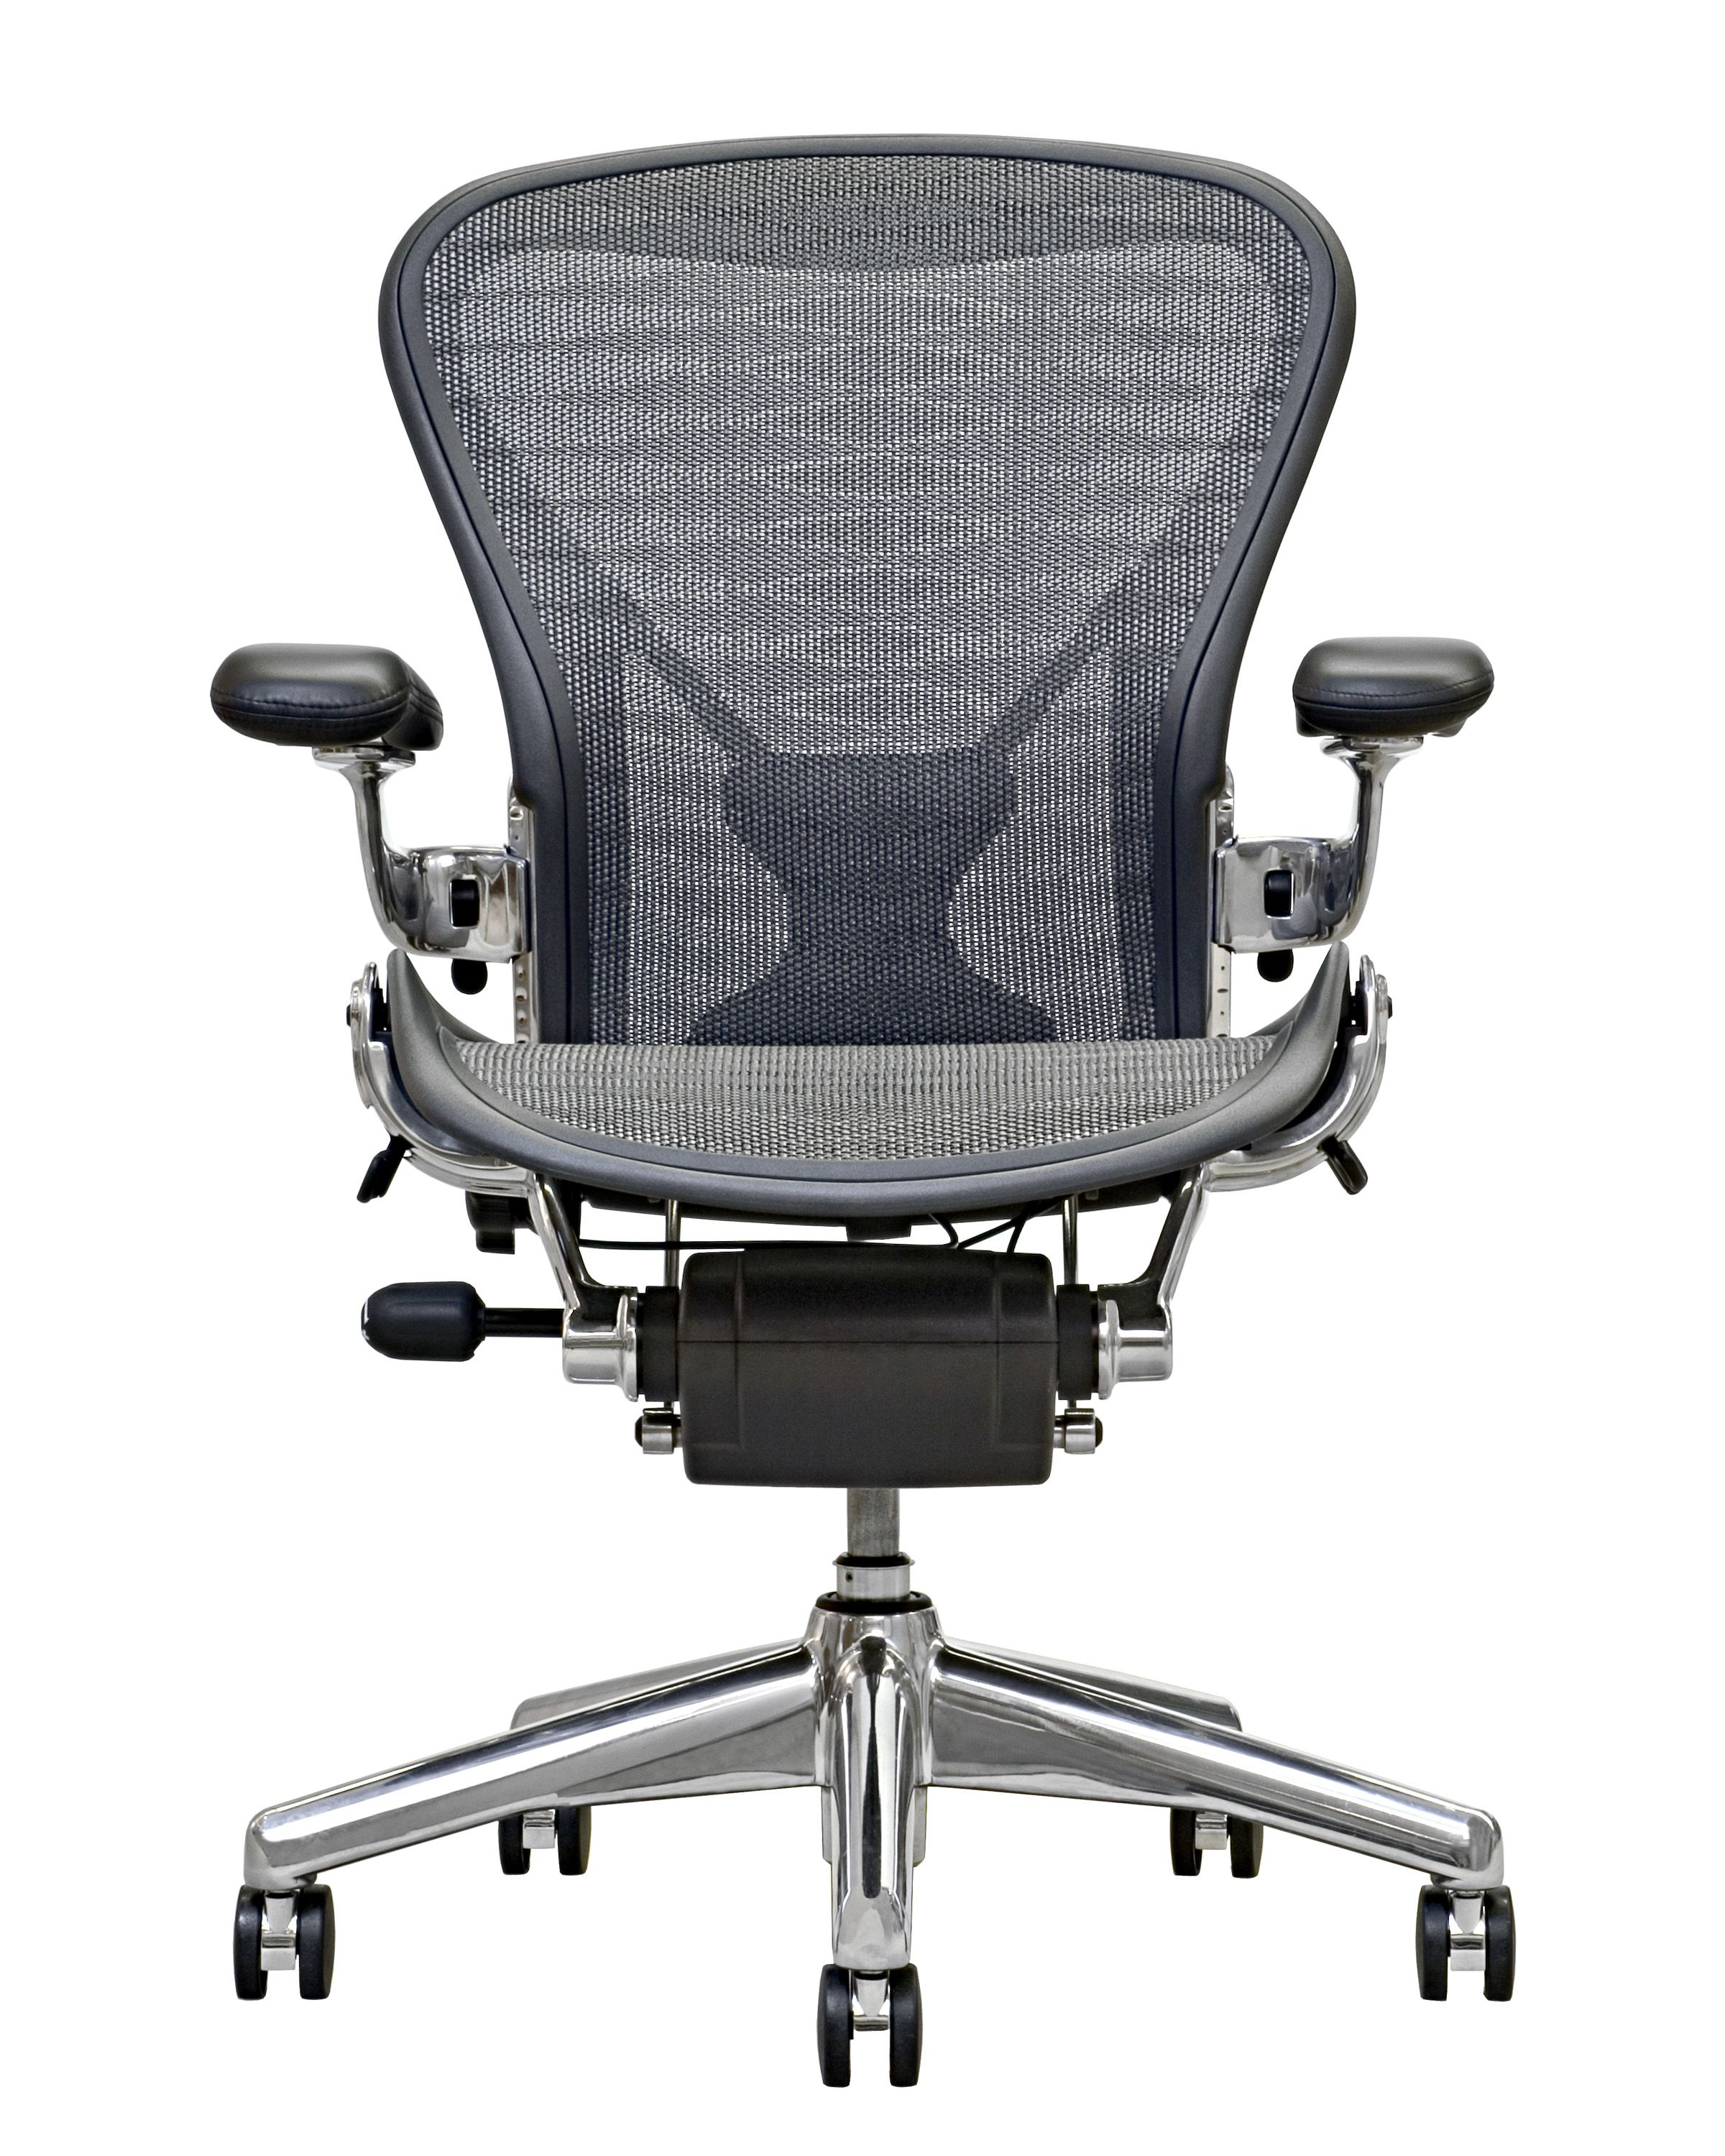 herman miller used office chairs desk with chair why focus groups kill innovation from the designer behind swiffer aeron designed by bill stumpf